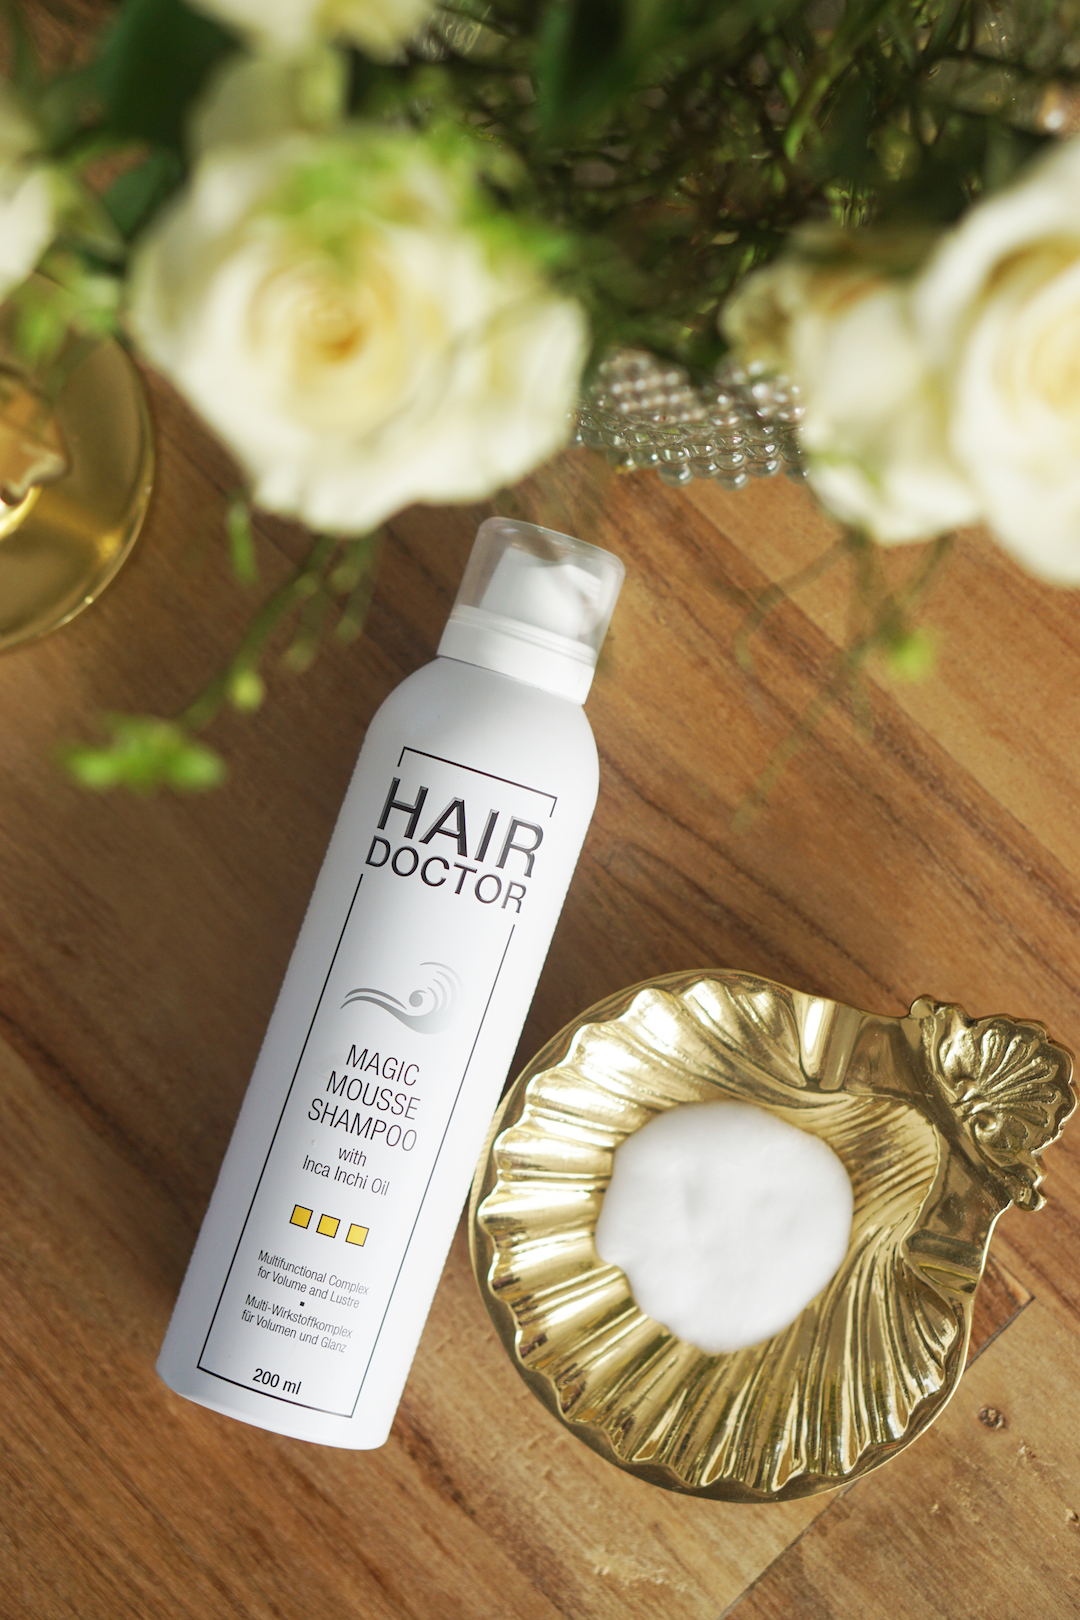 Hair Doctor Magic Mousse Shampoo en Argan Oil